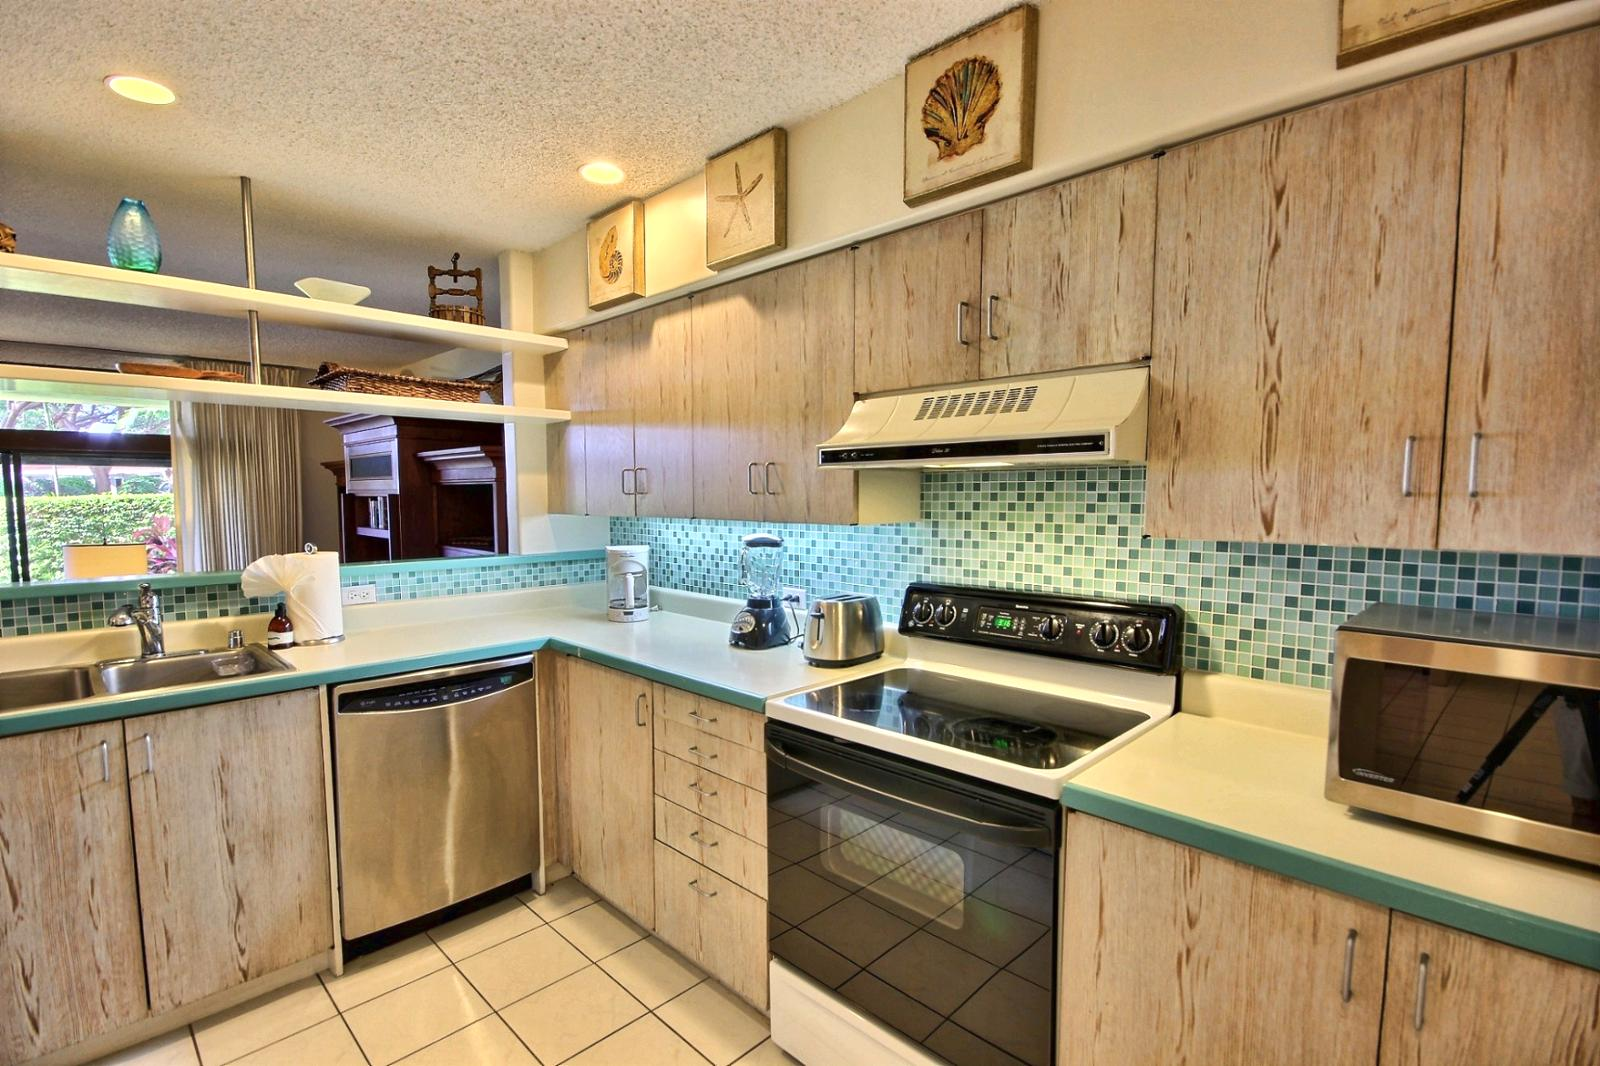 Coffee maker and everything you need to enjoy your stay in the comfort of this large condo.